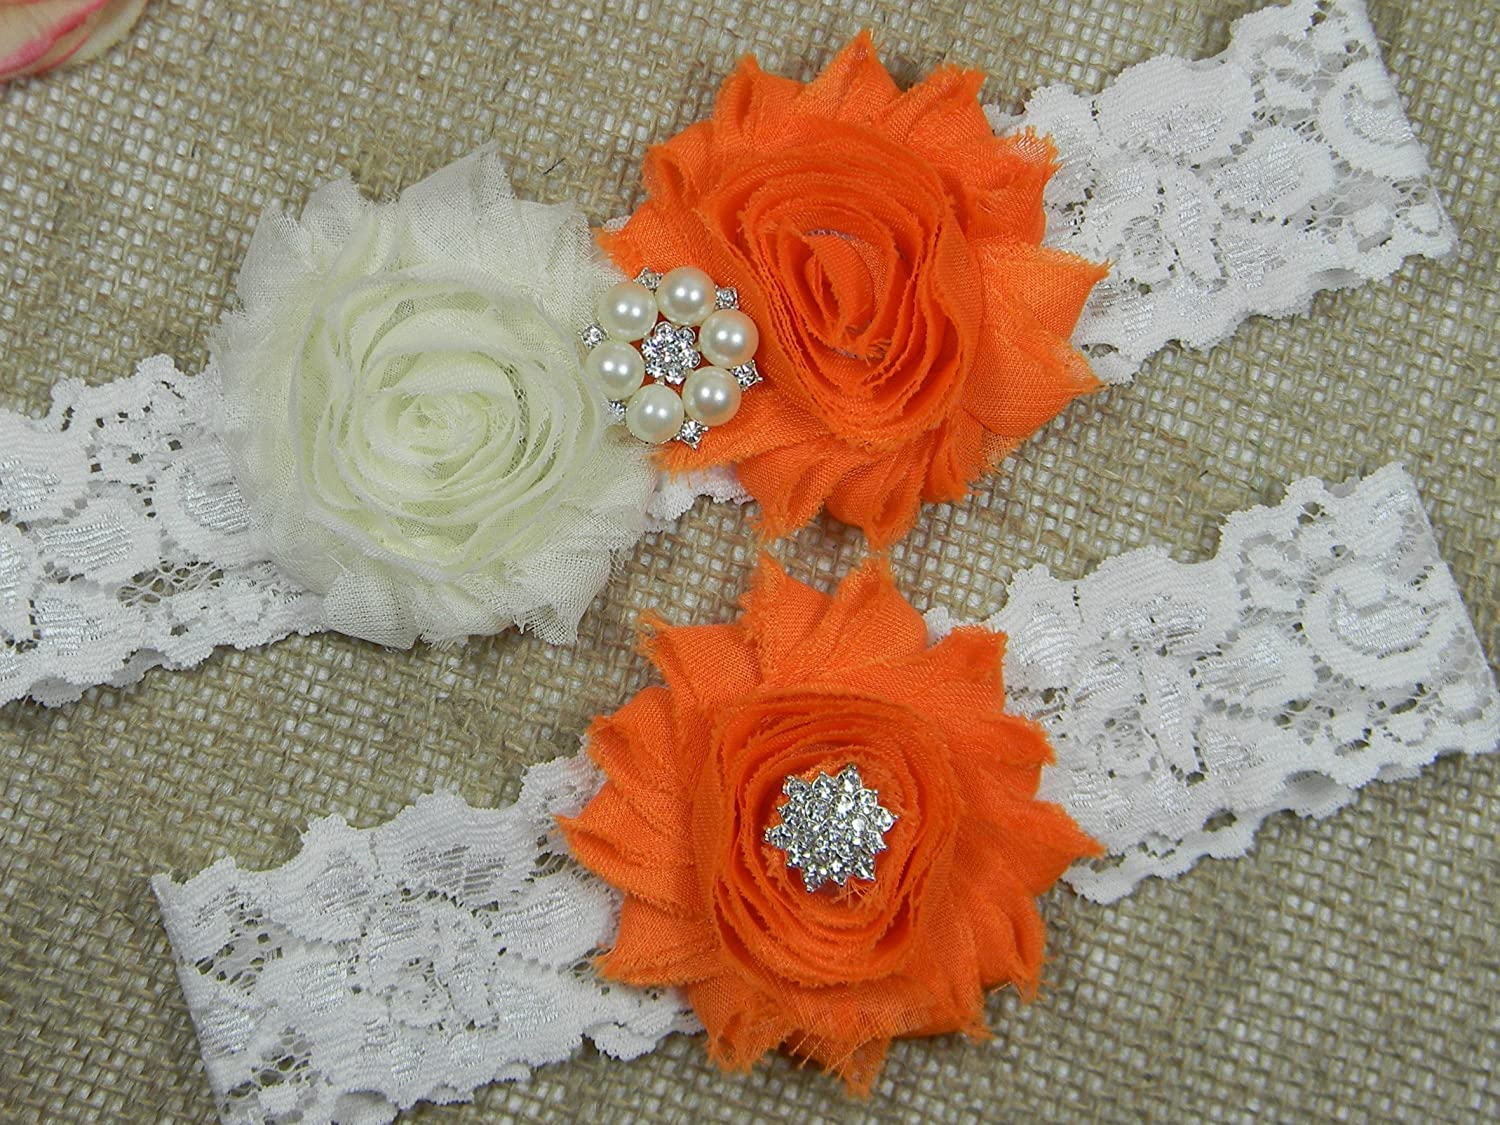 Wedding Garter Set, Bridal Garter Belt, Ivory and Orange Garter, Keepsake and Toss Stretch Lace Garters